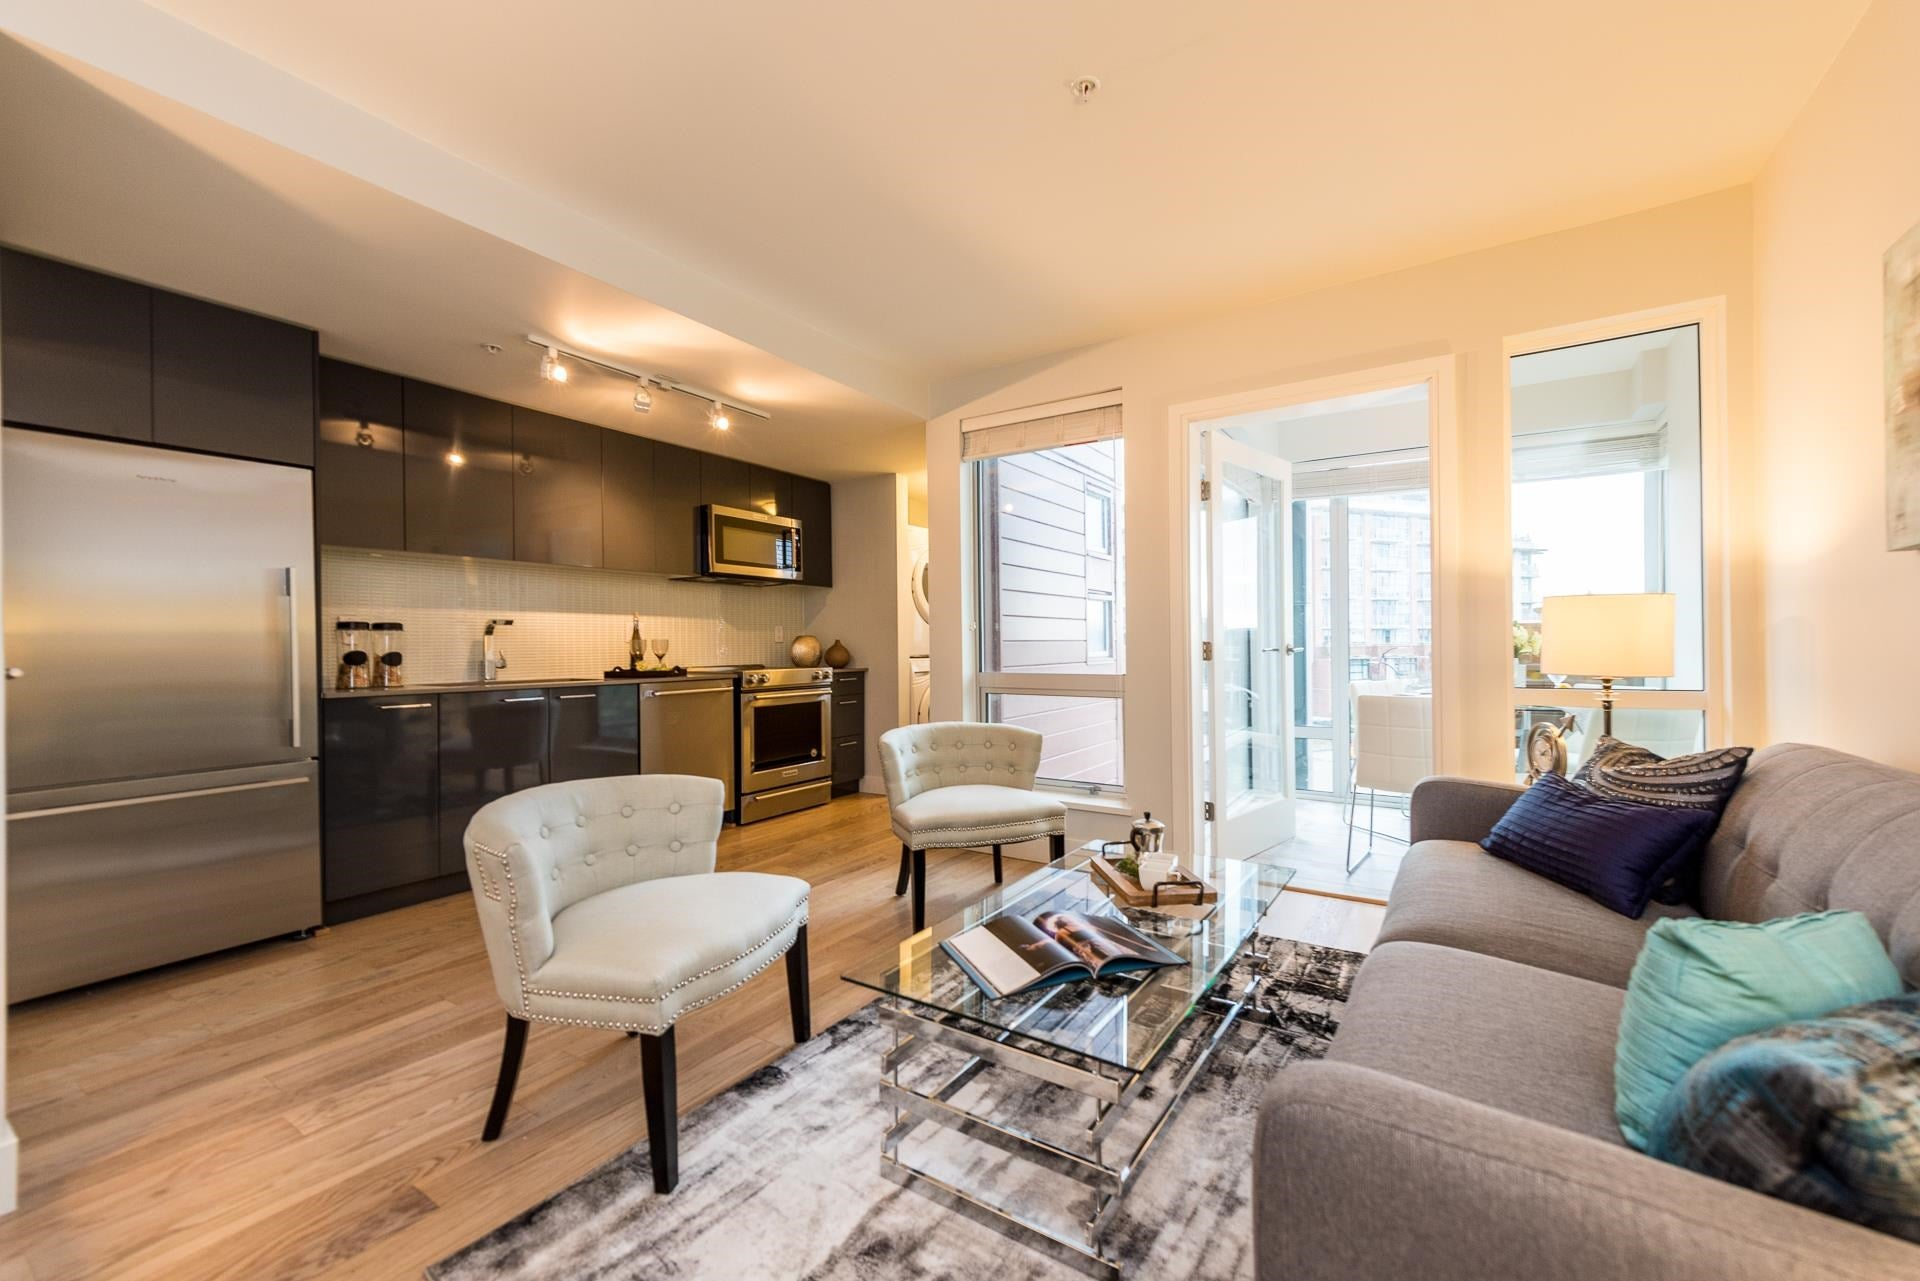 401 233 KINGSWAY - Mount Pleasant VE Apartment/Condo for sale, 1 Bedroom (R2604480) - #1